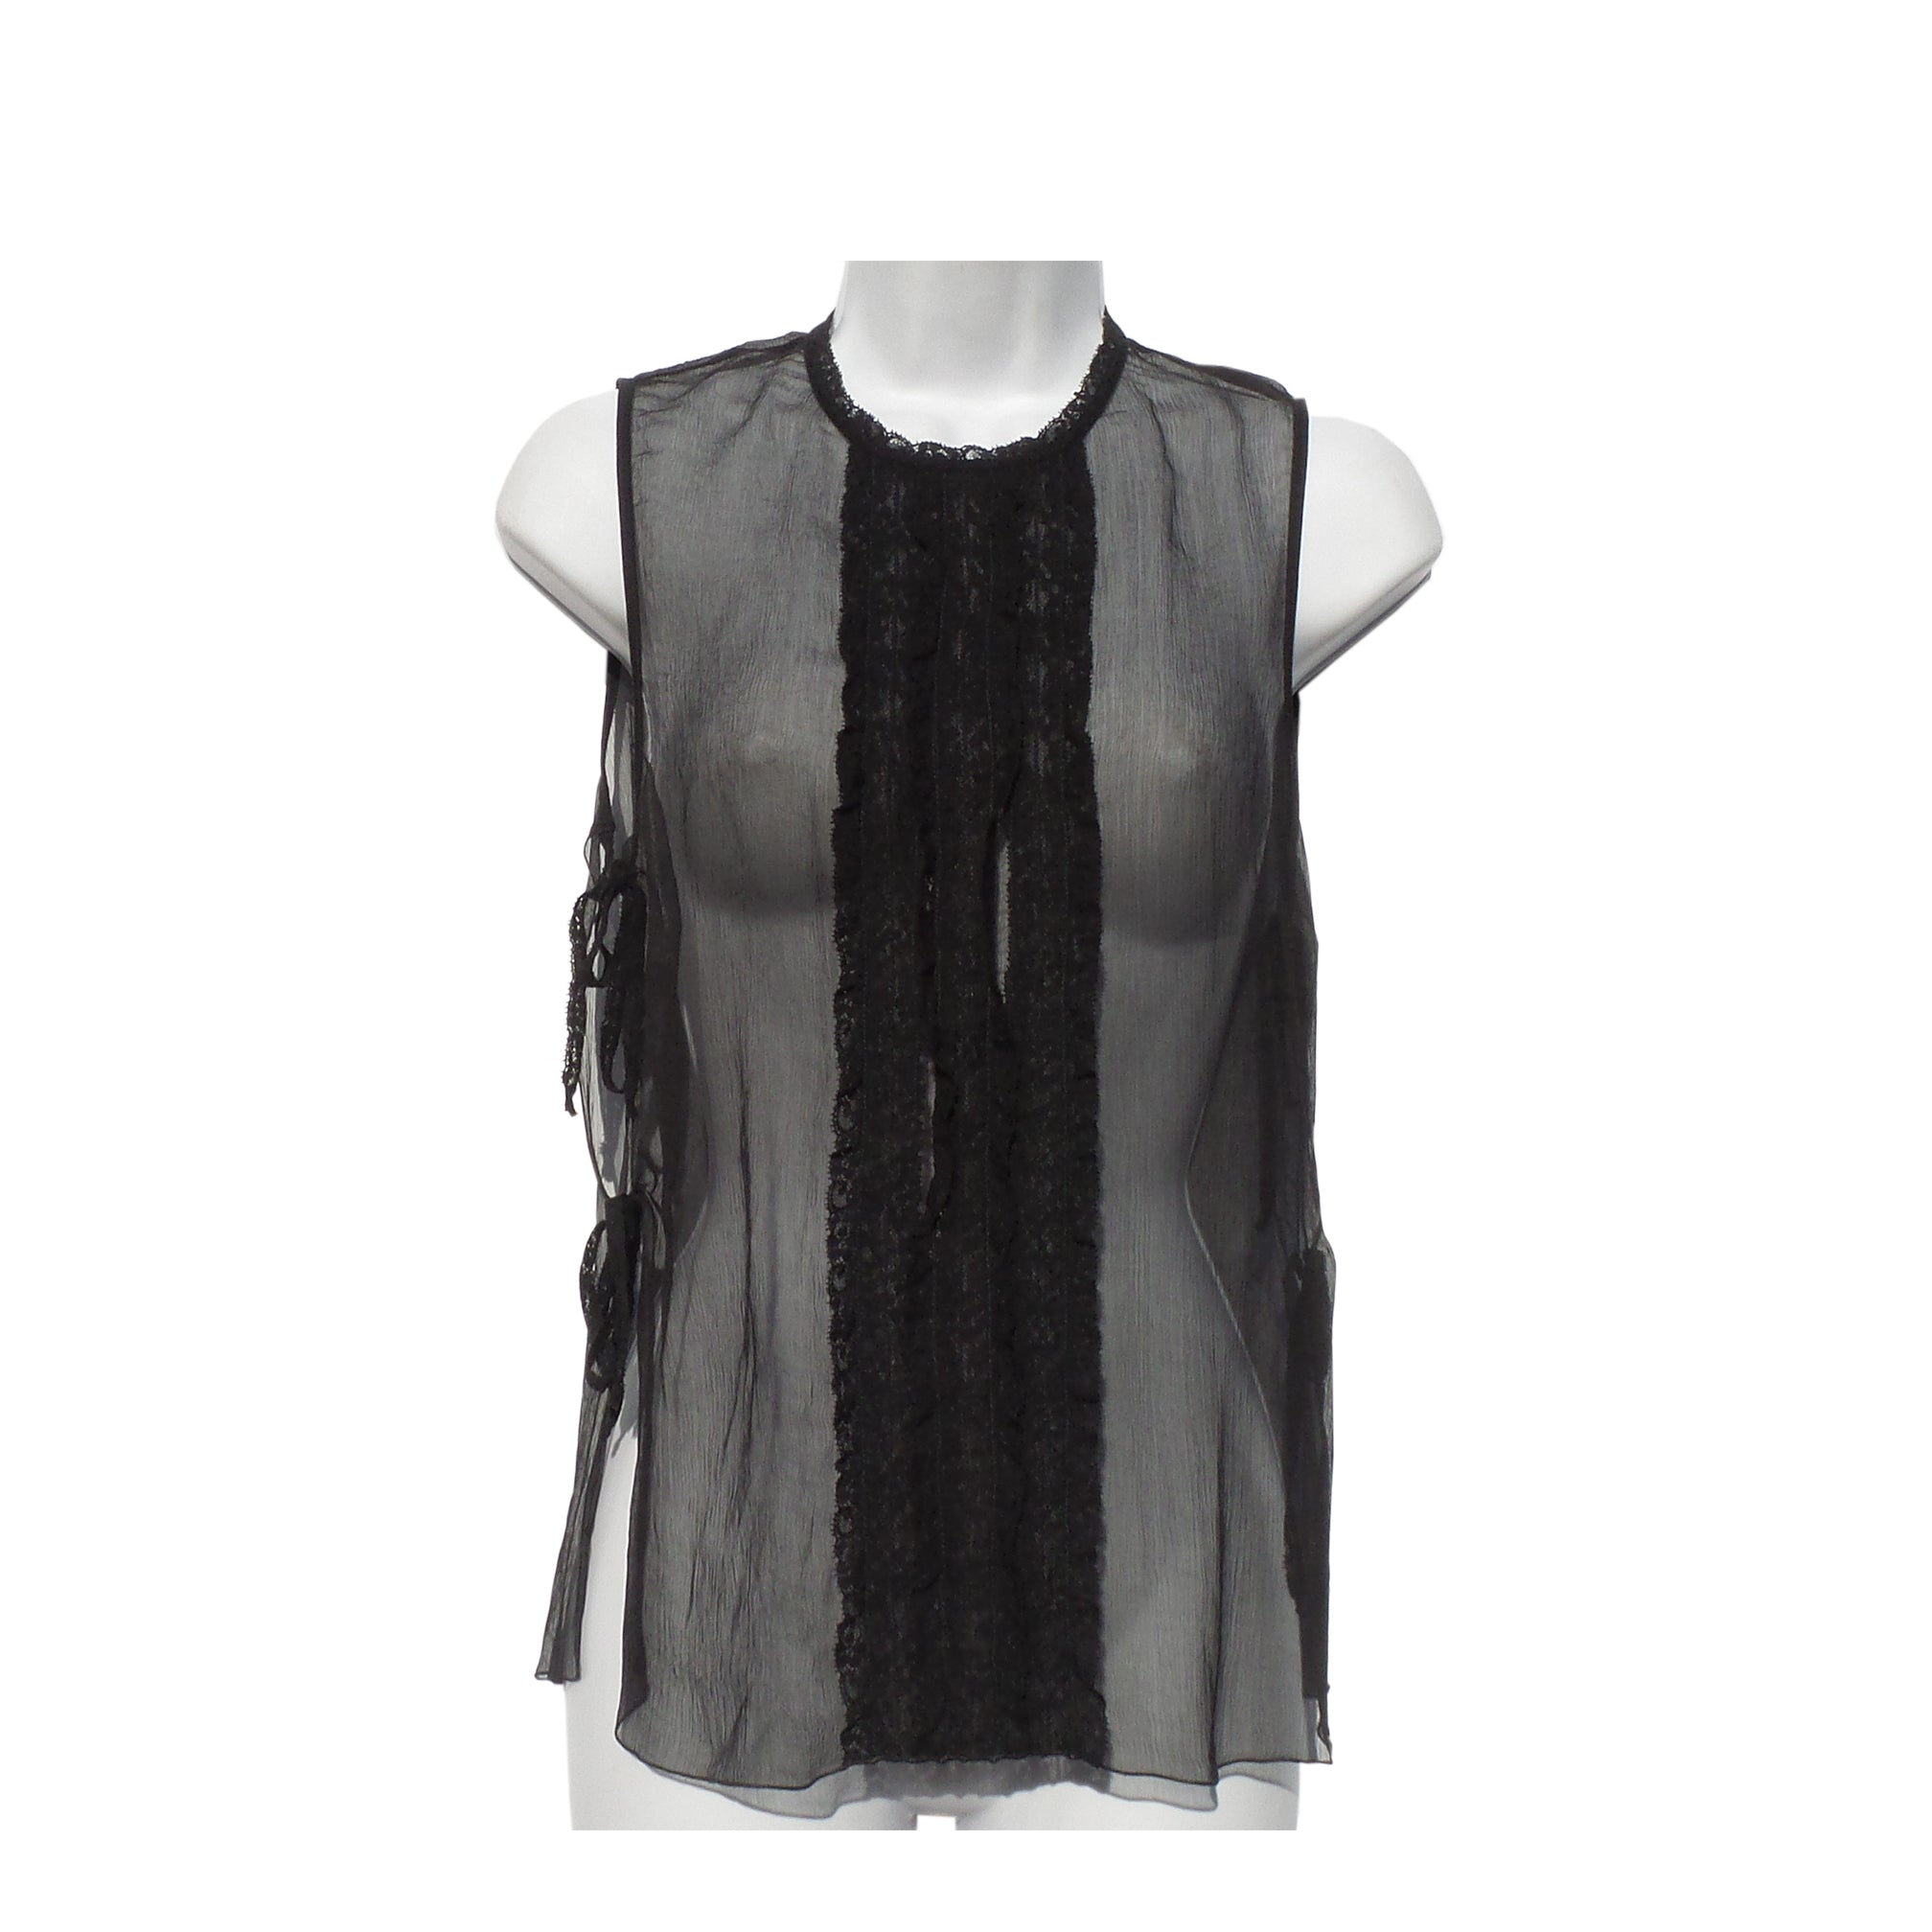 'Sold' CHANEL 08P Black Sleeveless Open Tie Side Lace Trim Sheer Silk Top Cami Tank 38